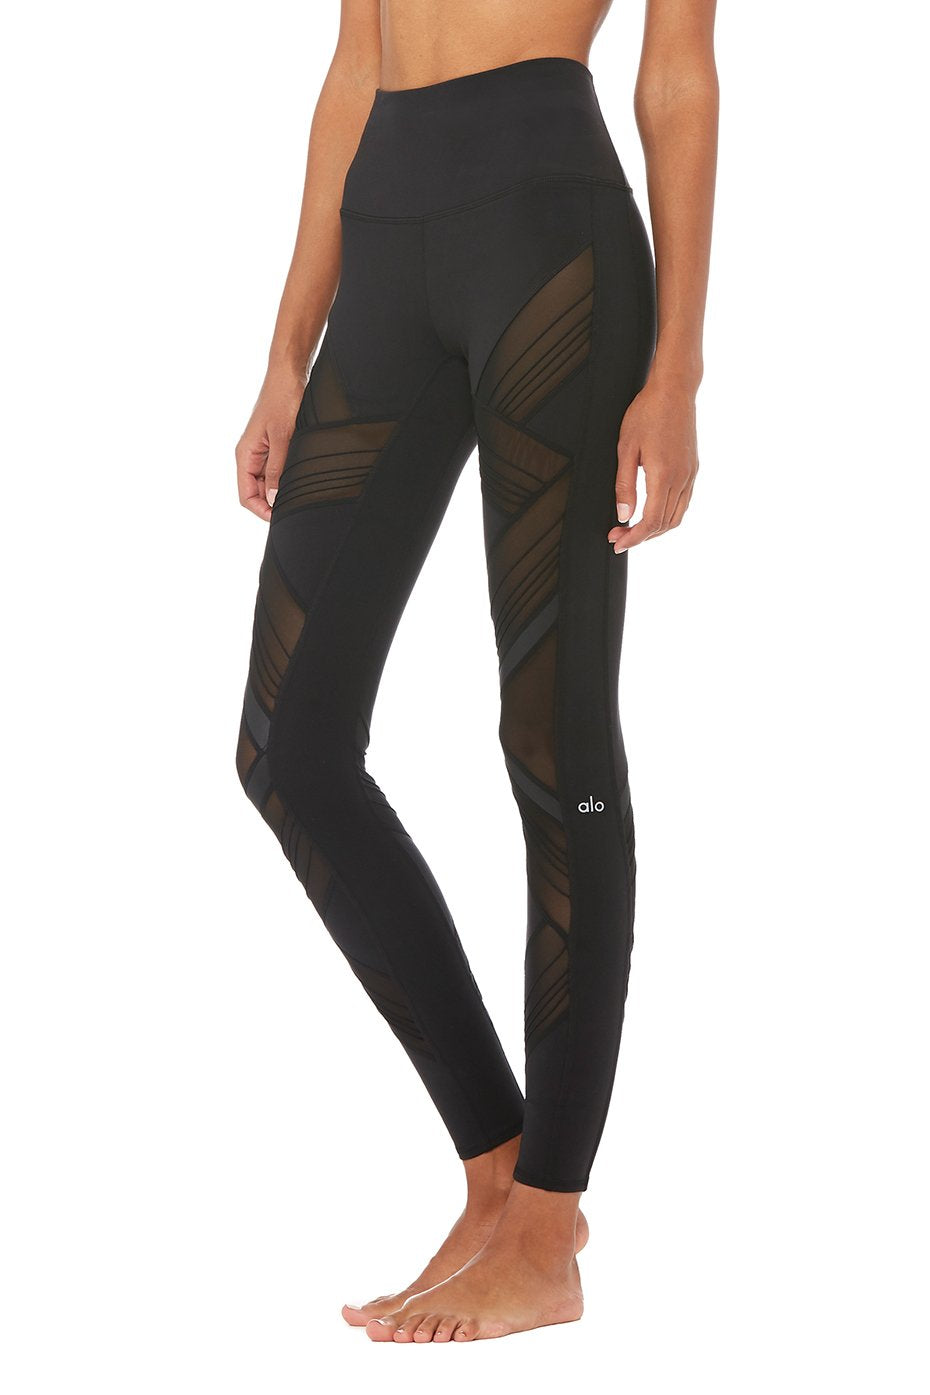 ff888daea4 Activewear Leggings | Quality, Comfort & Style | Get KITTED